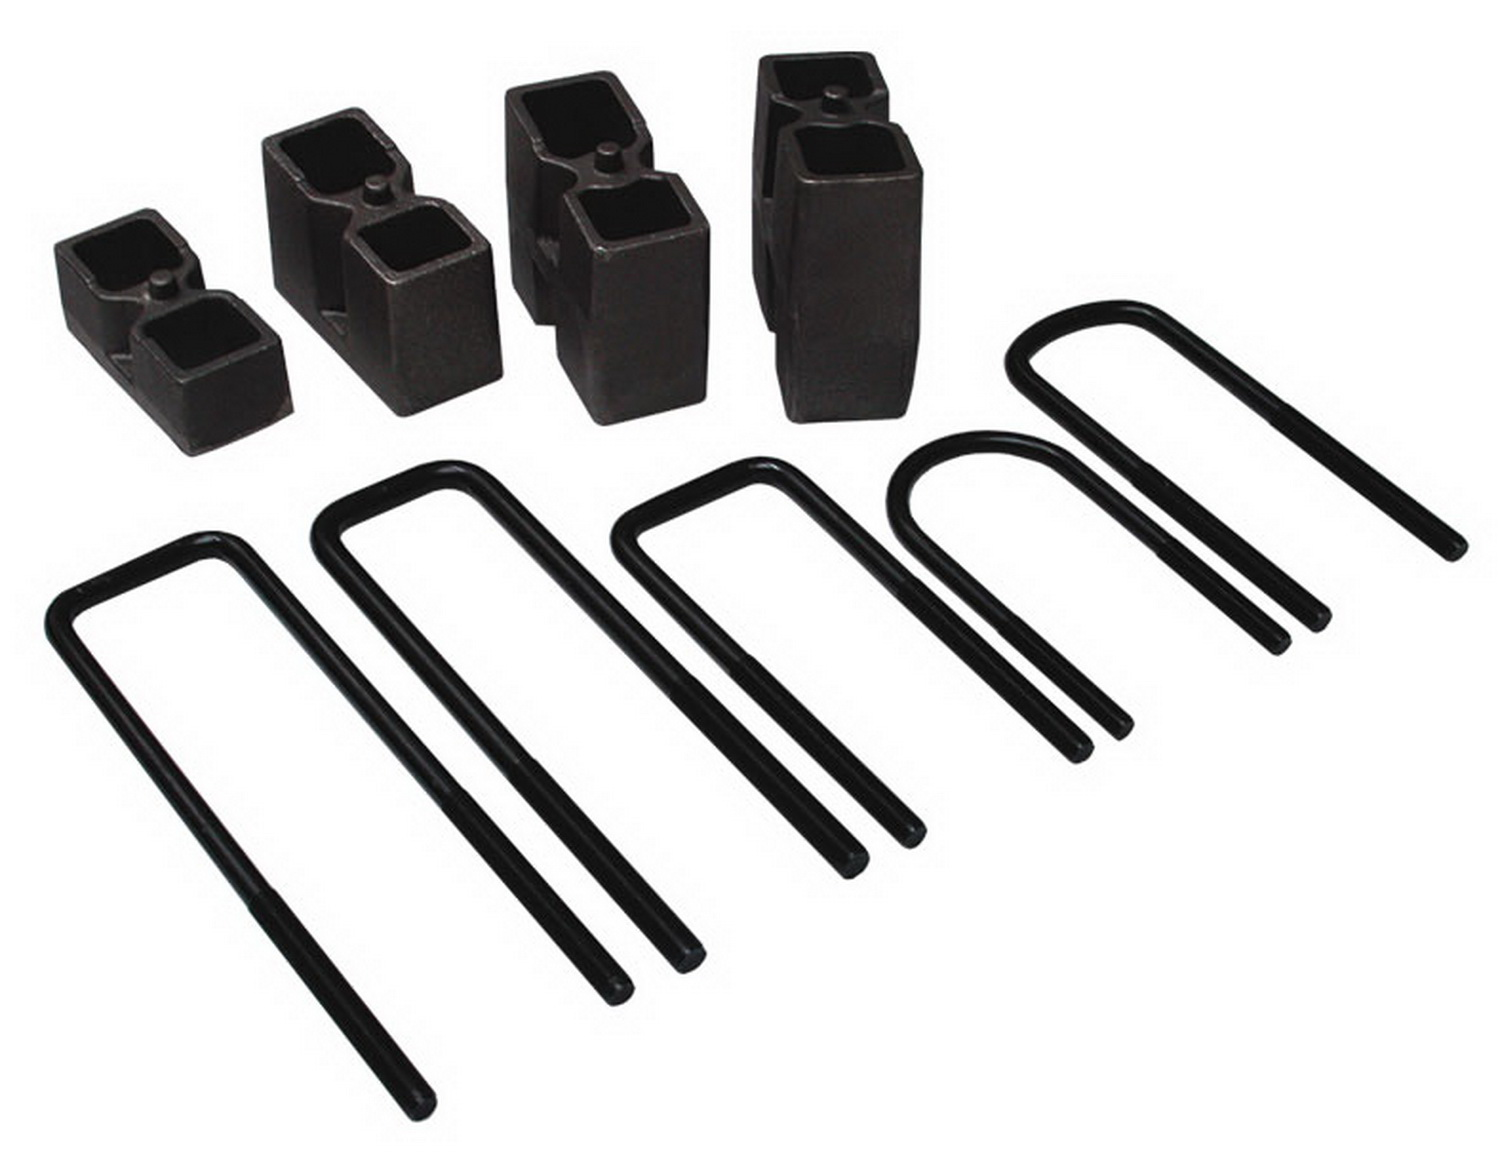 Skyjacker BUK2024 - Skyjacker Blocks & U-Bolt Kits